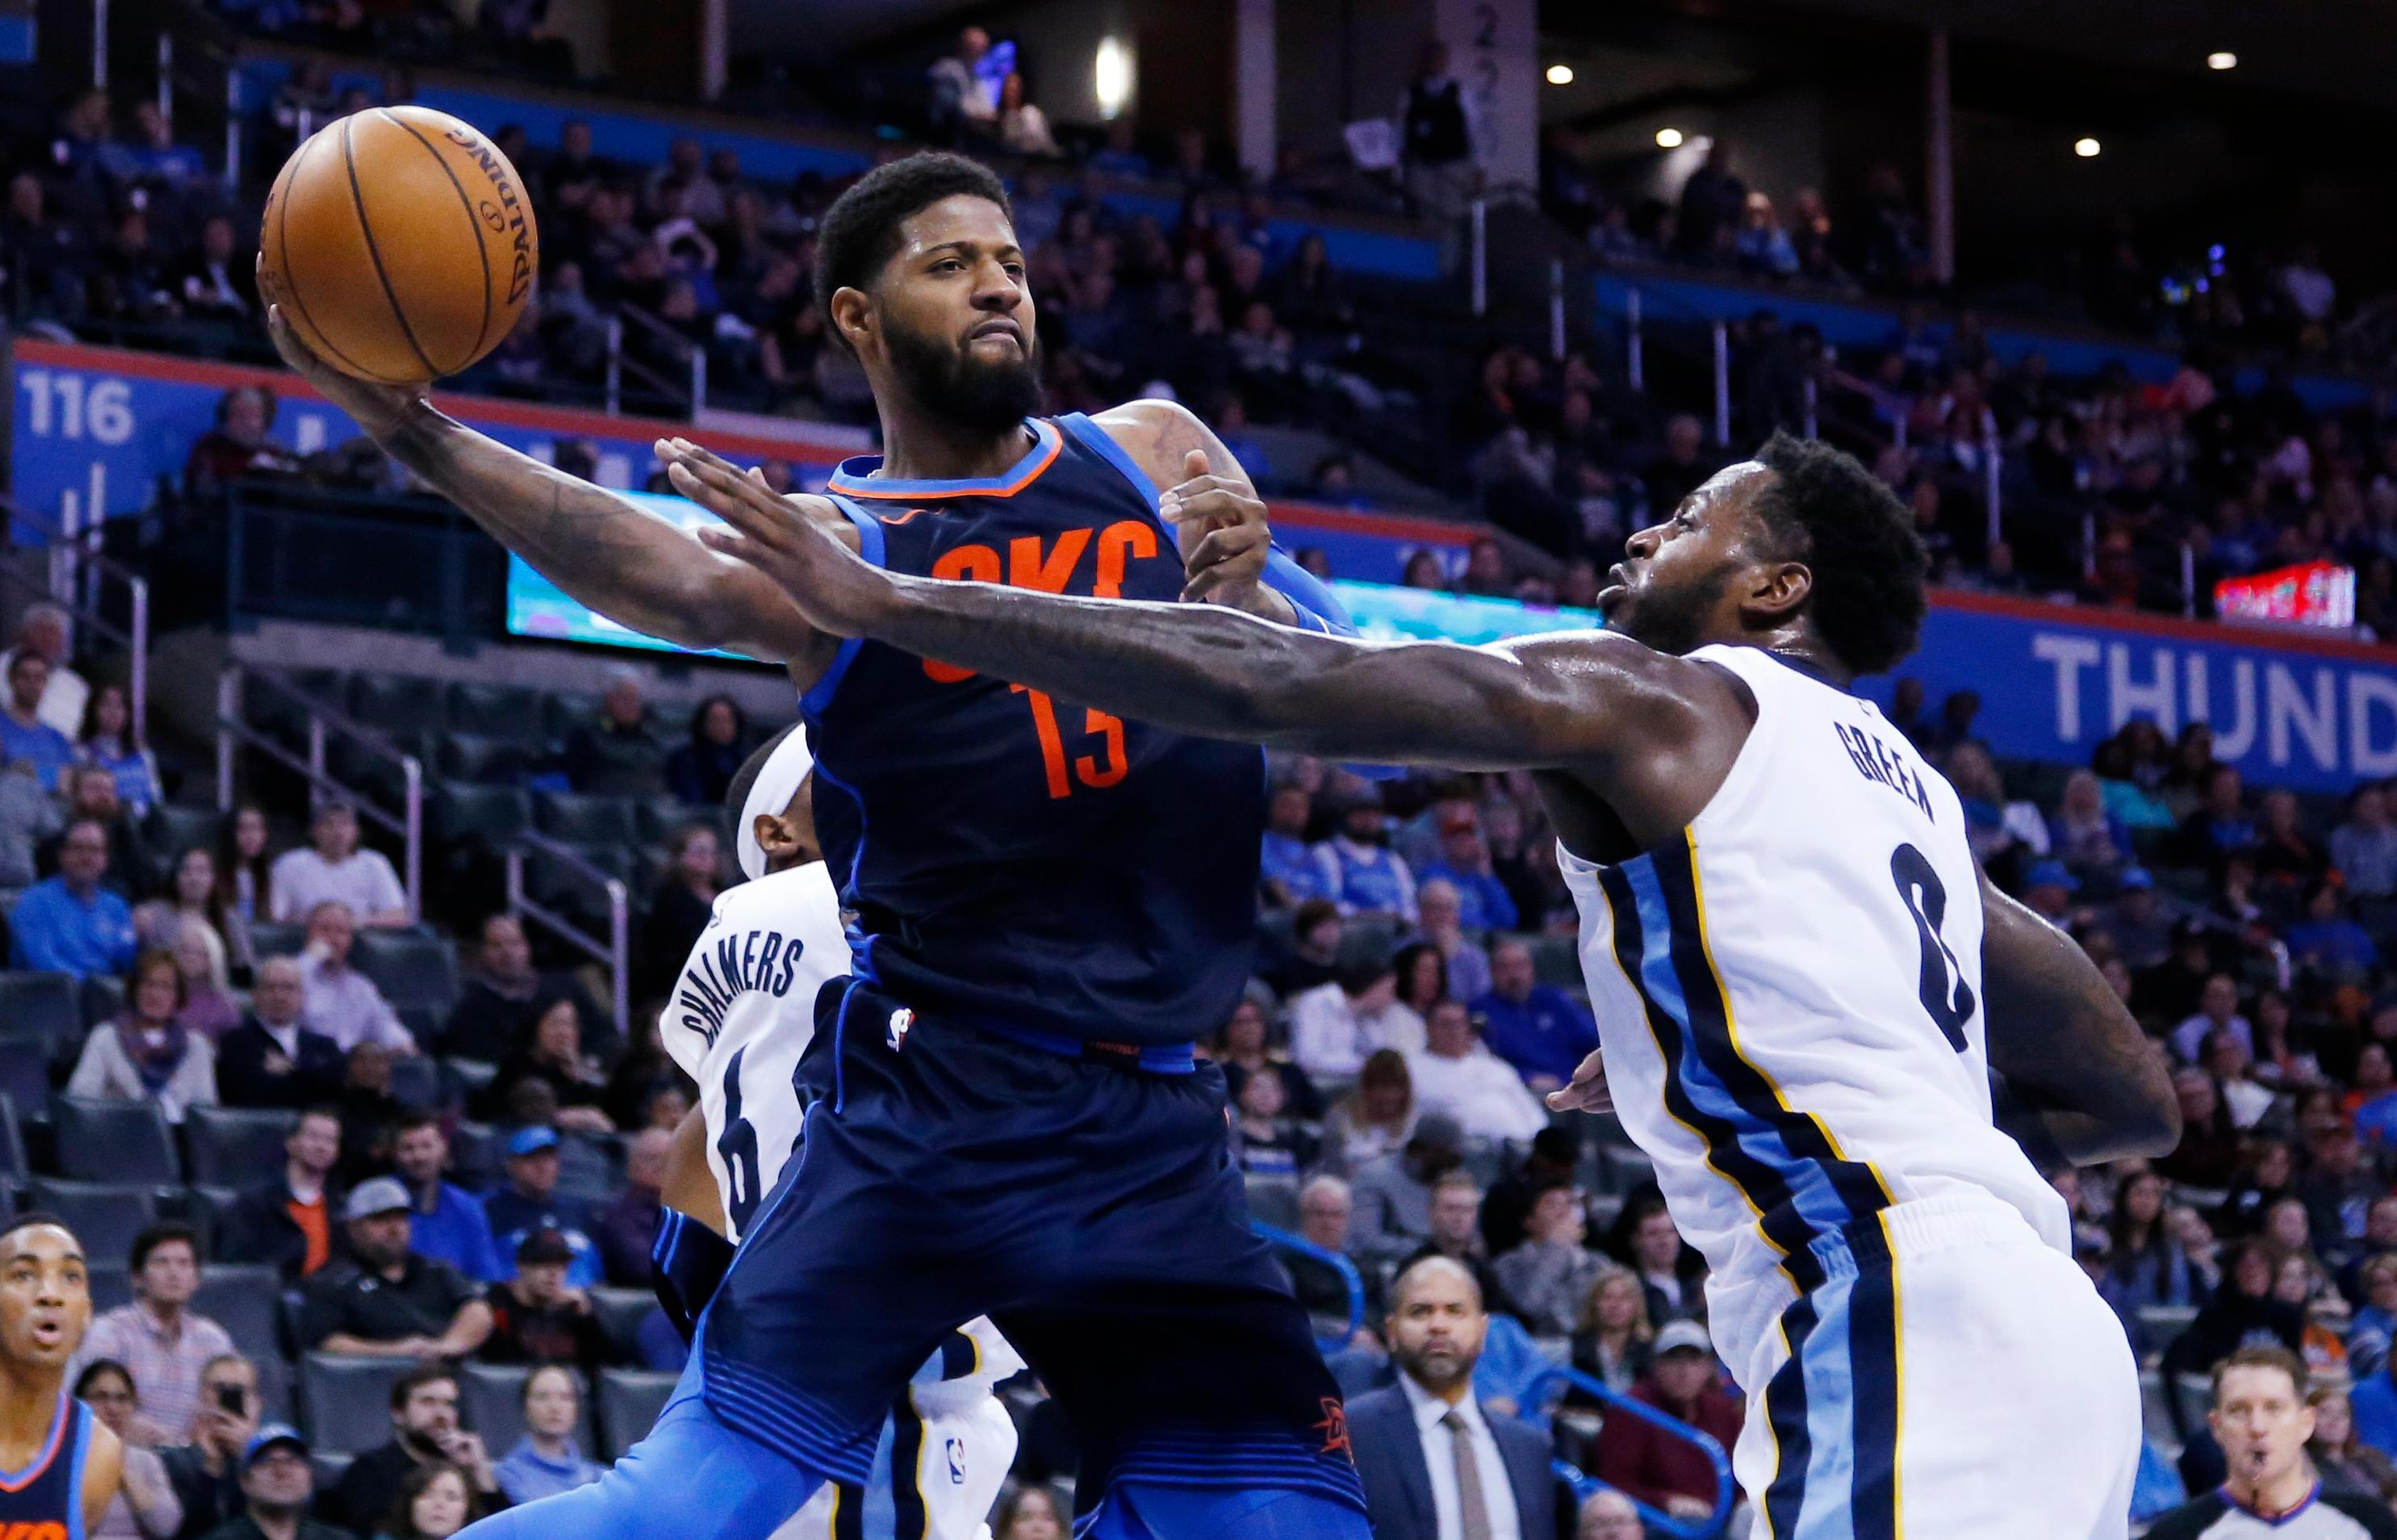 Oklahoma City Thunder forward Paul George (13) passes around Memphis Grizzlies forward JaMychal Green (0) in the second half of an NBA basketball game in Oklahoma City, Sunday, Feb. 11, 2018. (AP Photo/Sue Ogrocki)